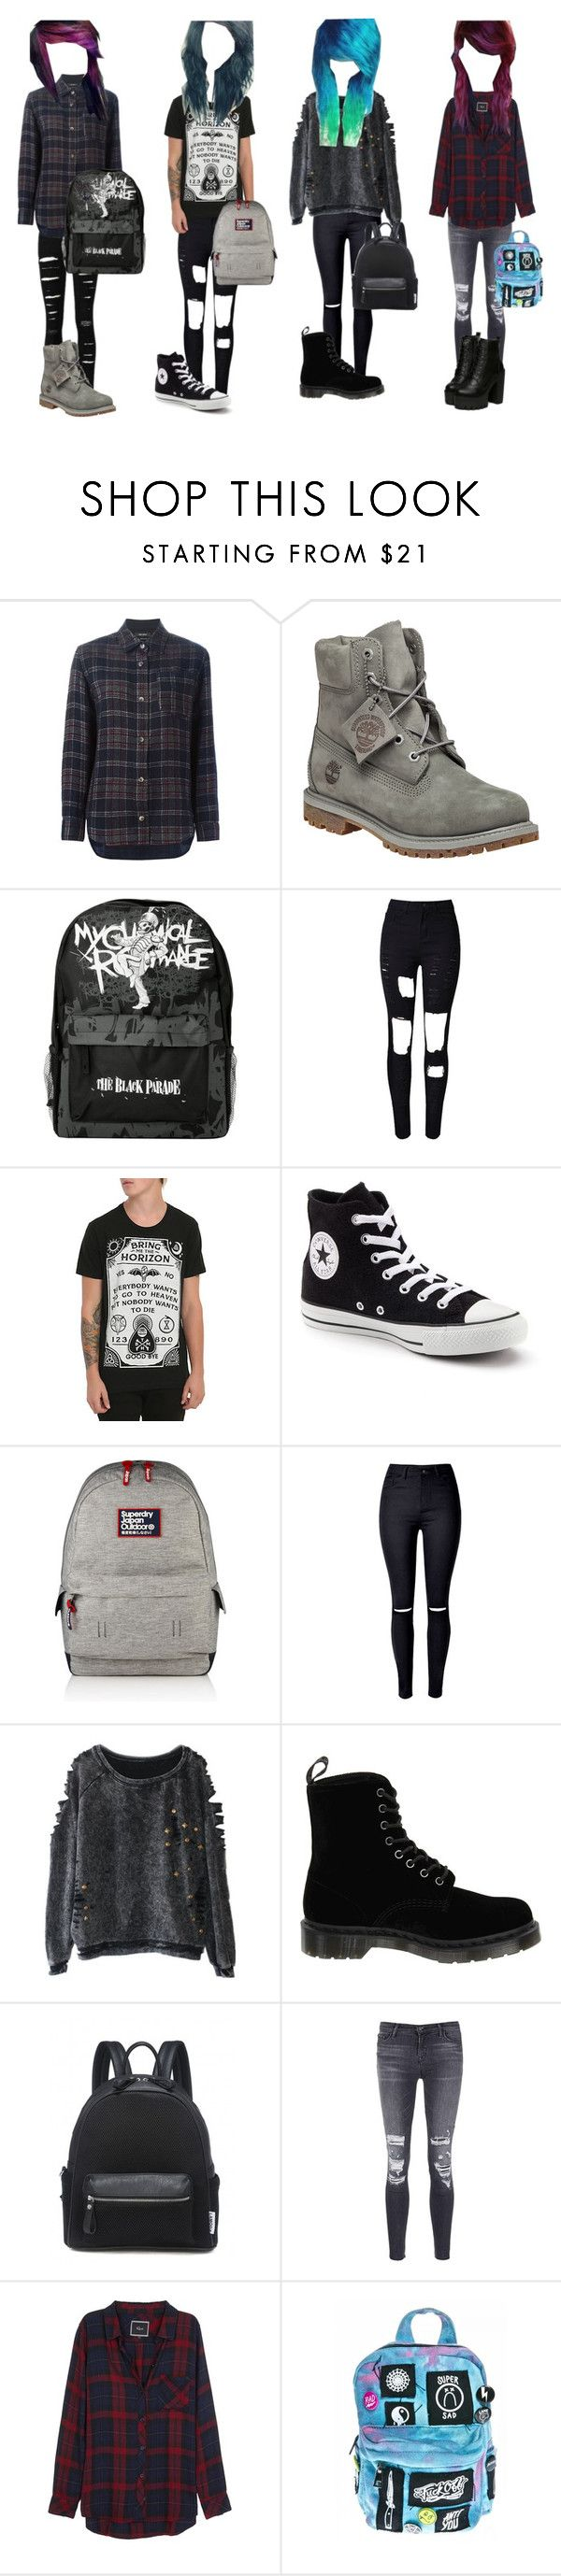 """Emo/scene girl outfits"" by miab1245 ❤ liked on Polyvore featuring Isabel Marant, Timberland, WithChic, Converse, Superdry, Dr. Martens, J Brand, Rails and Current Mood"